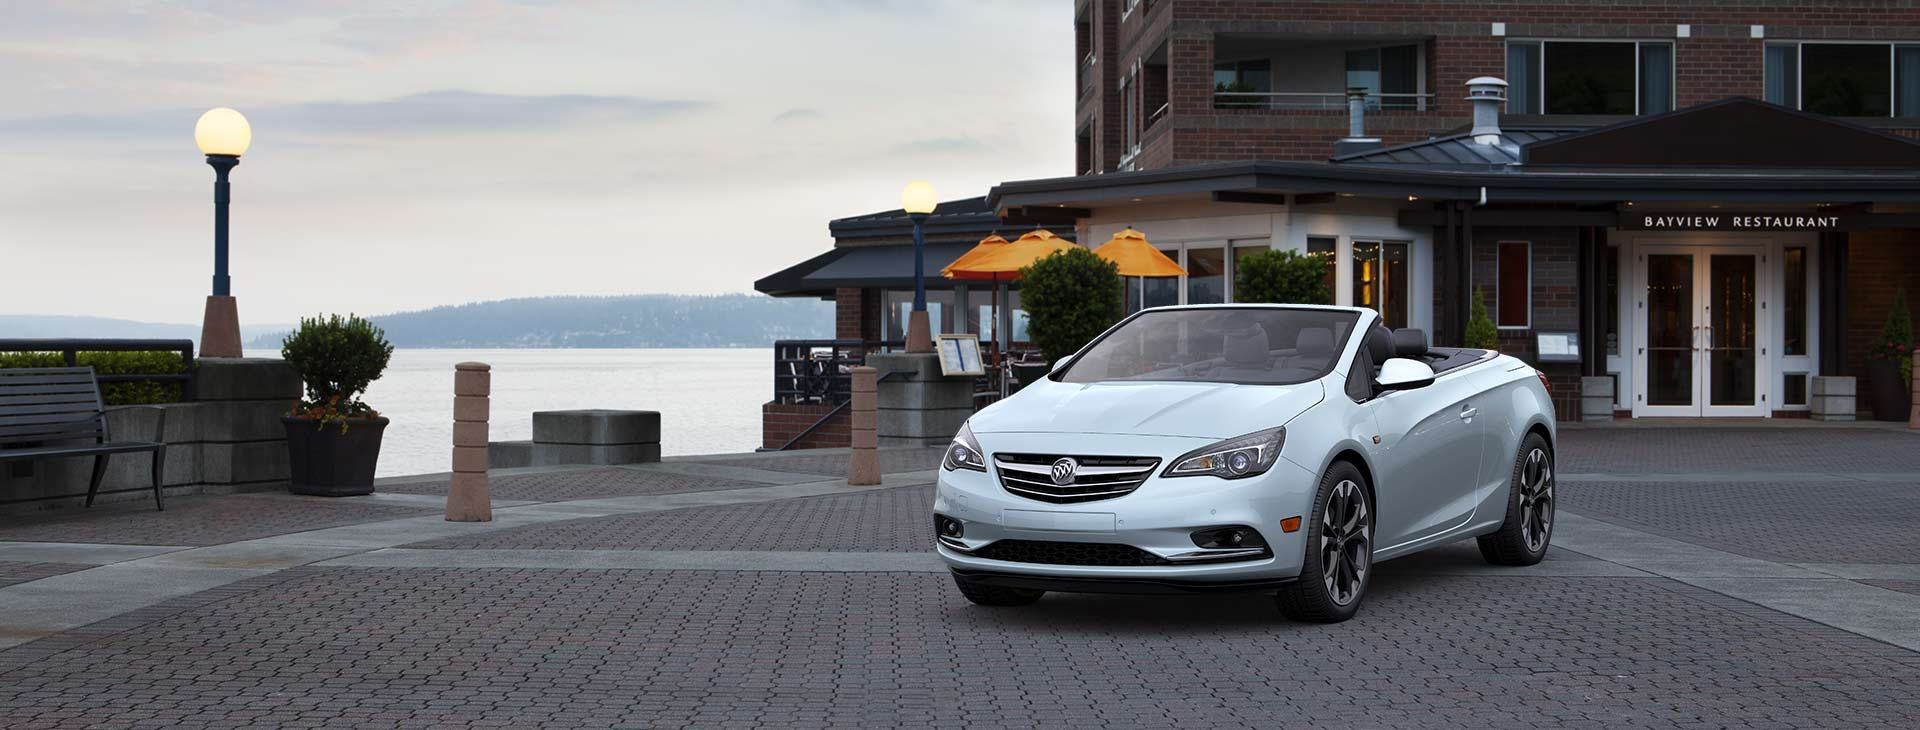 new buick cascada lease and finance offers georgetown ky. Black Bedroom Furniture Sets. Home Design Ideas